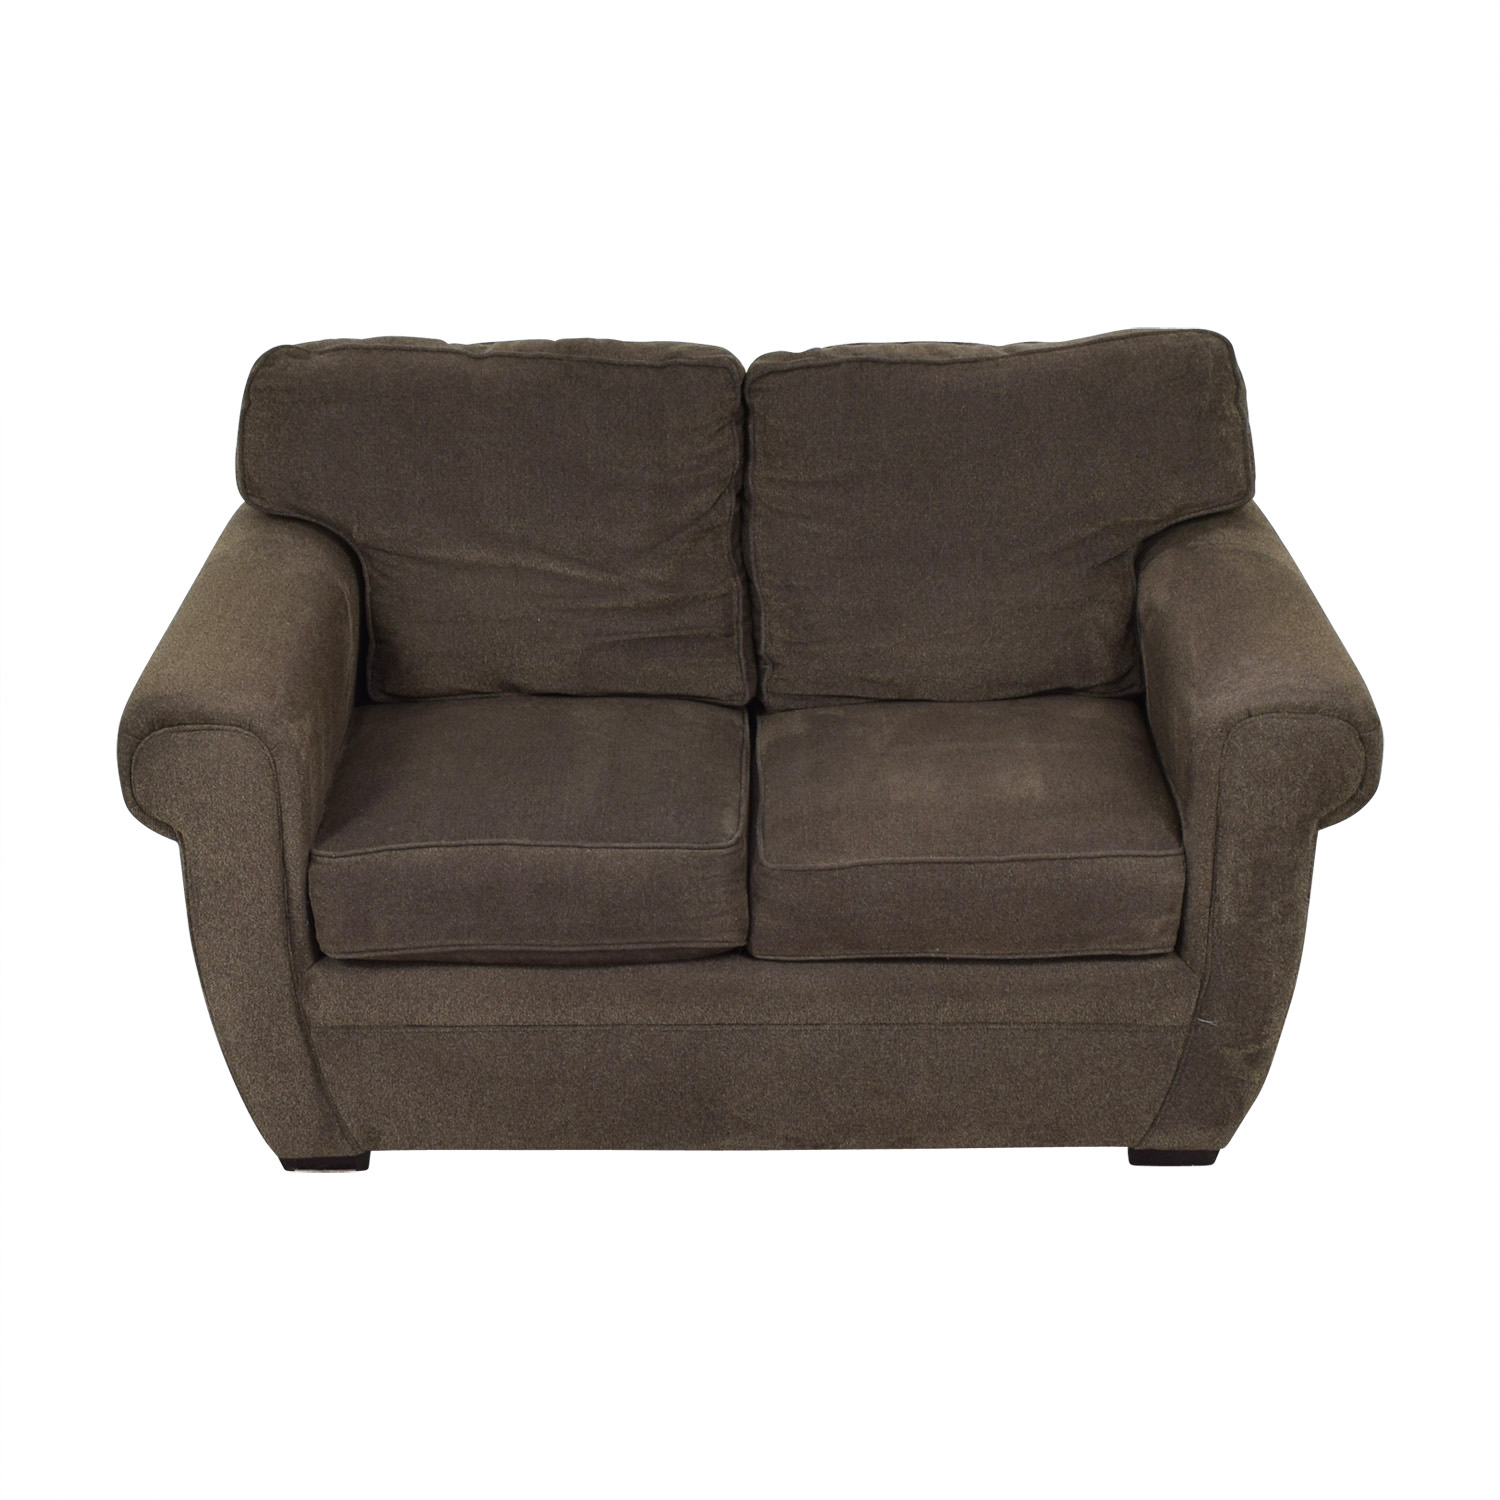 Broyhill Broyhill Brown Loveseat nyc